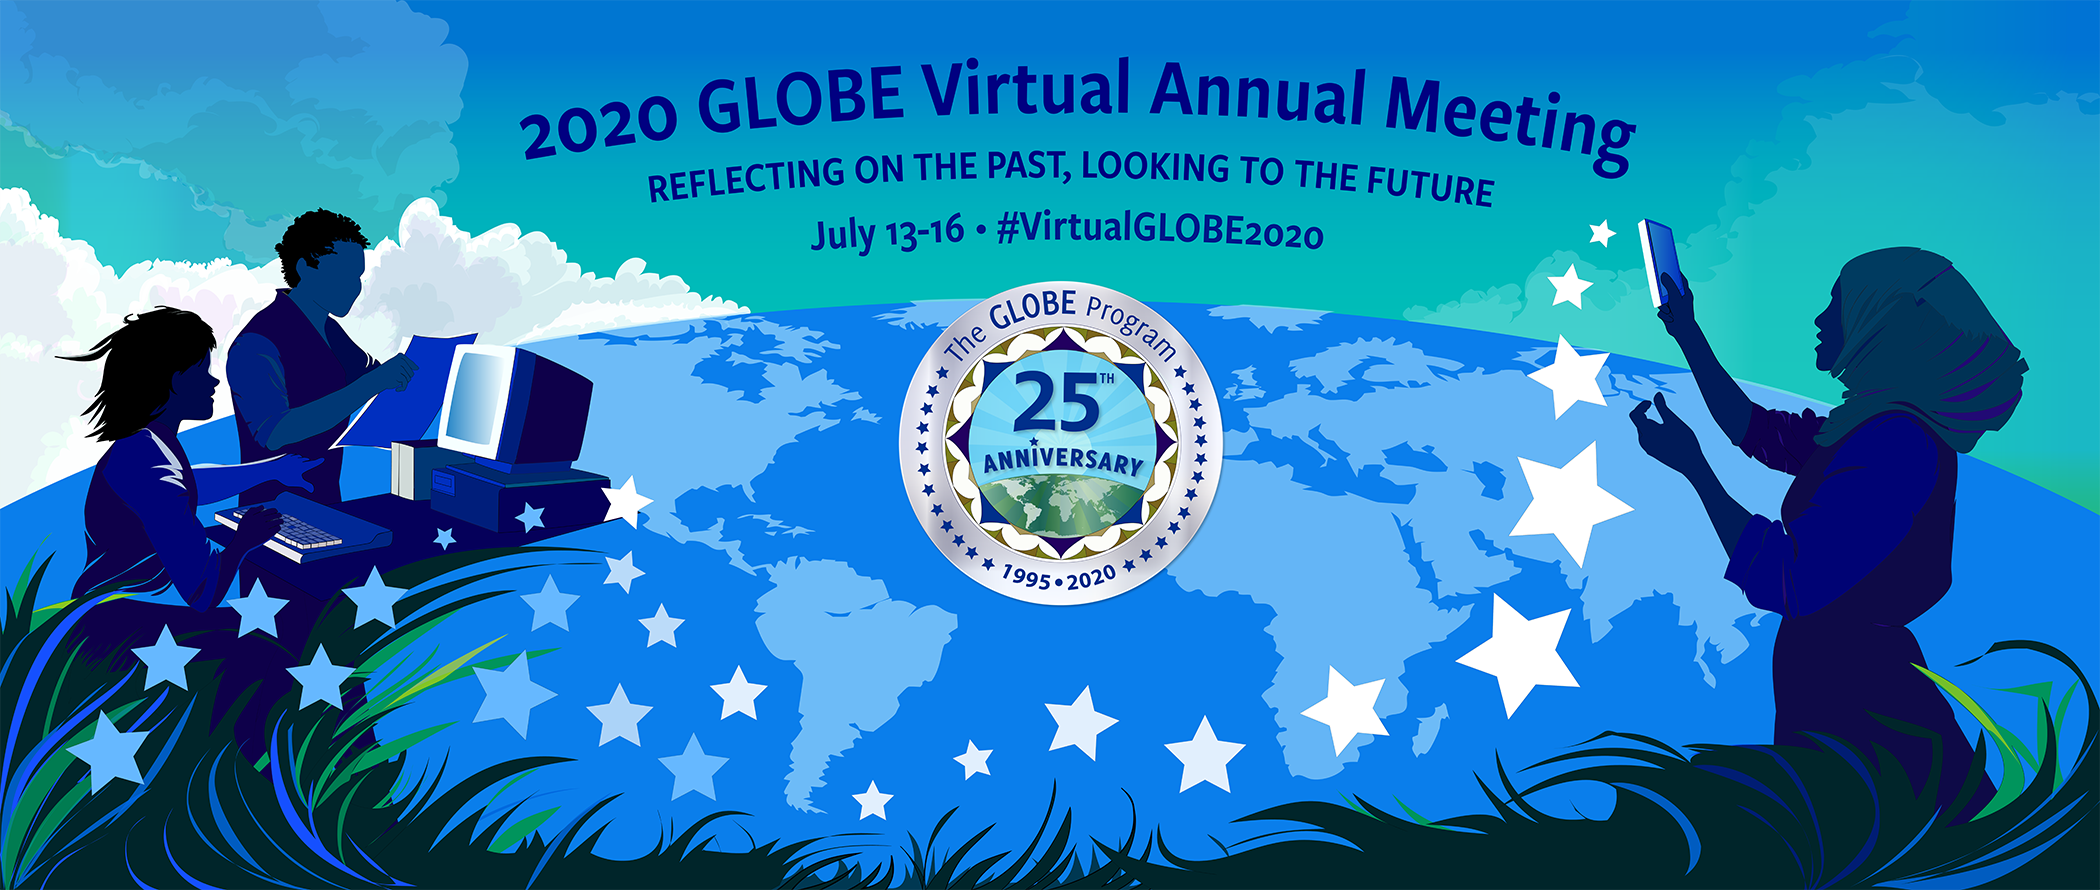 Banner for the 2020 GLOBE Virtual Meeting